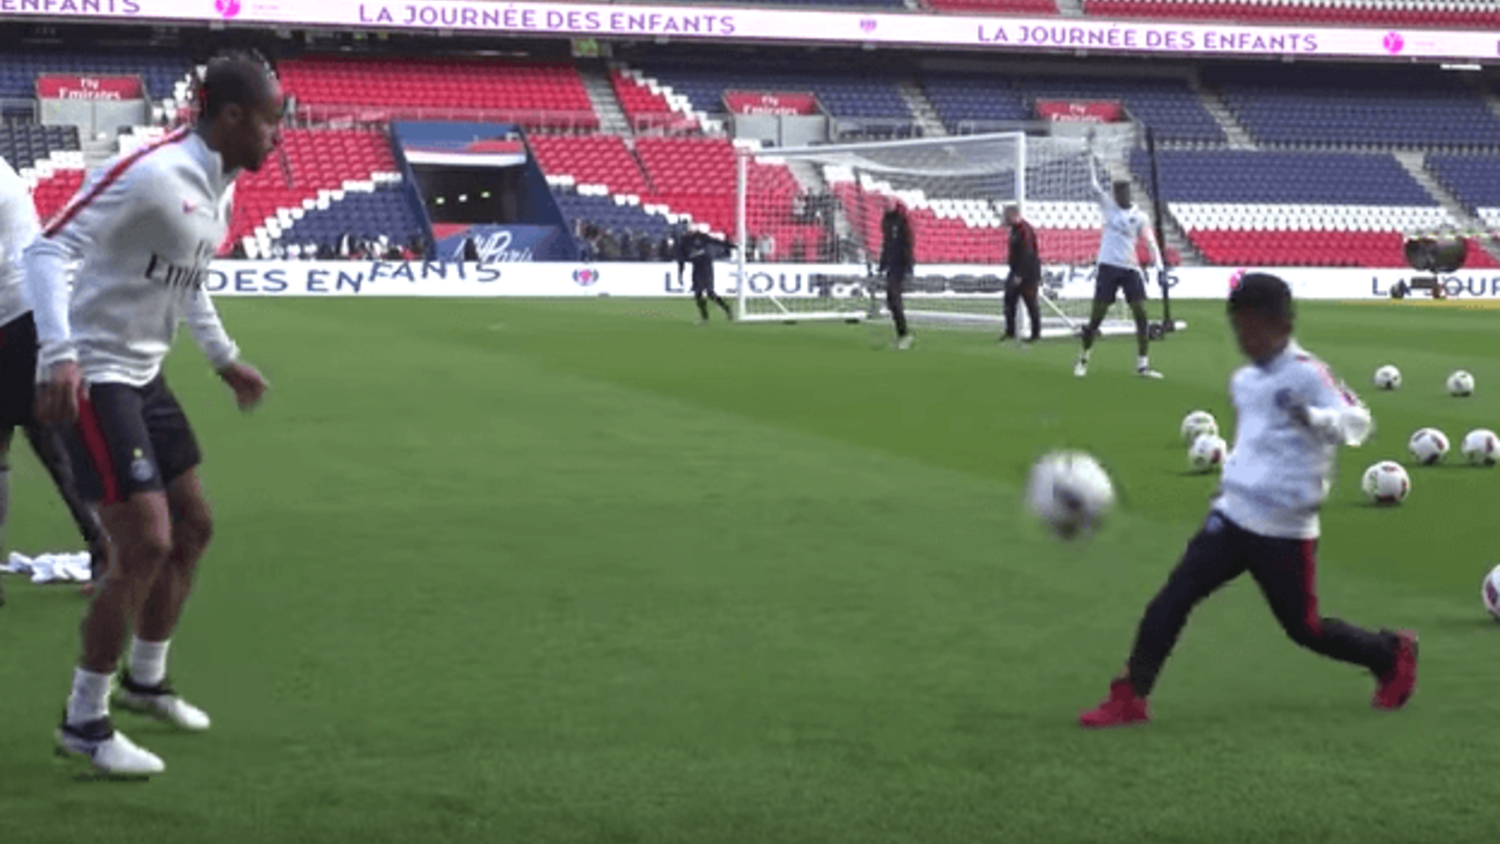 Kluivert's 9 Year Old Son takes on Lucas Moura in skill battle